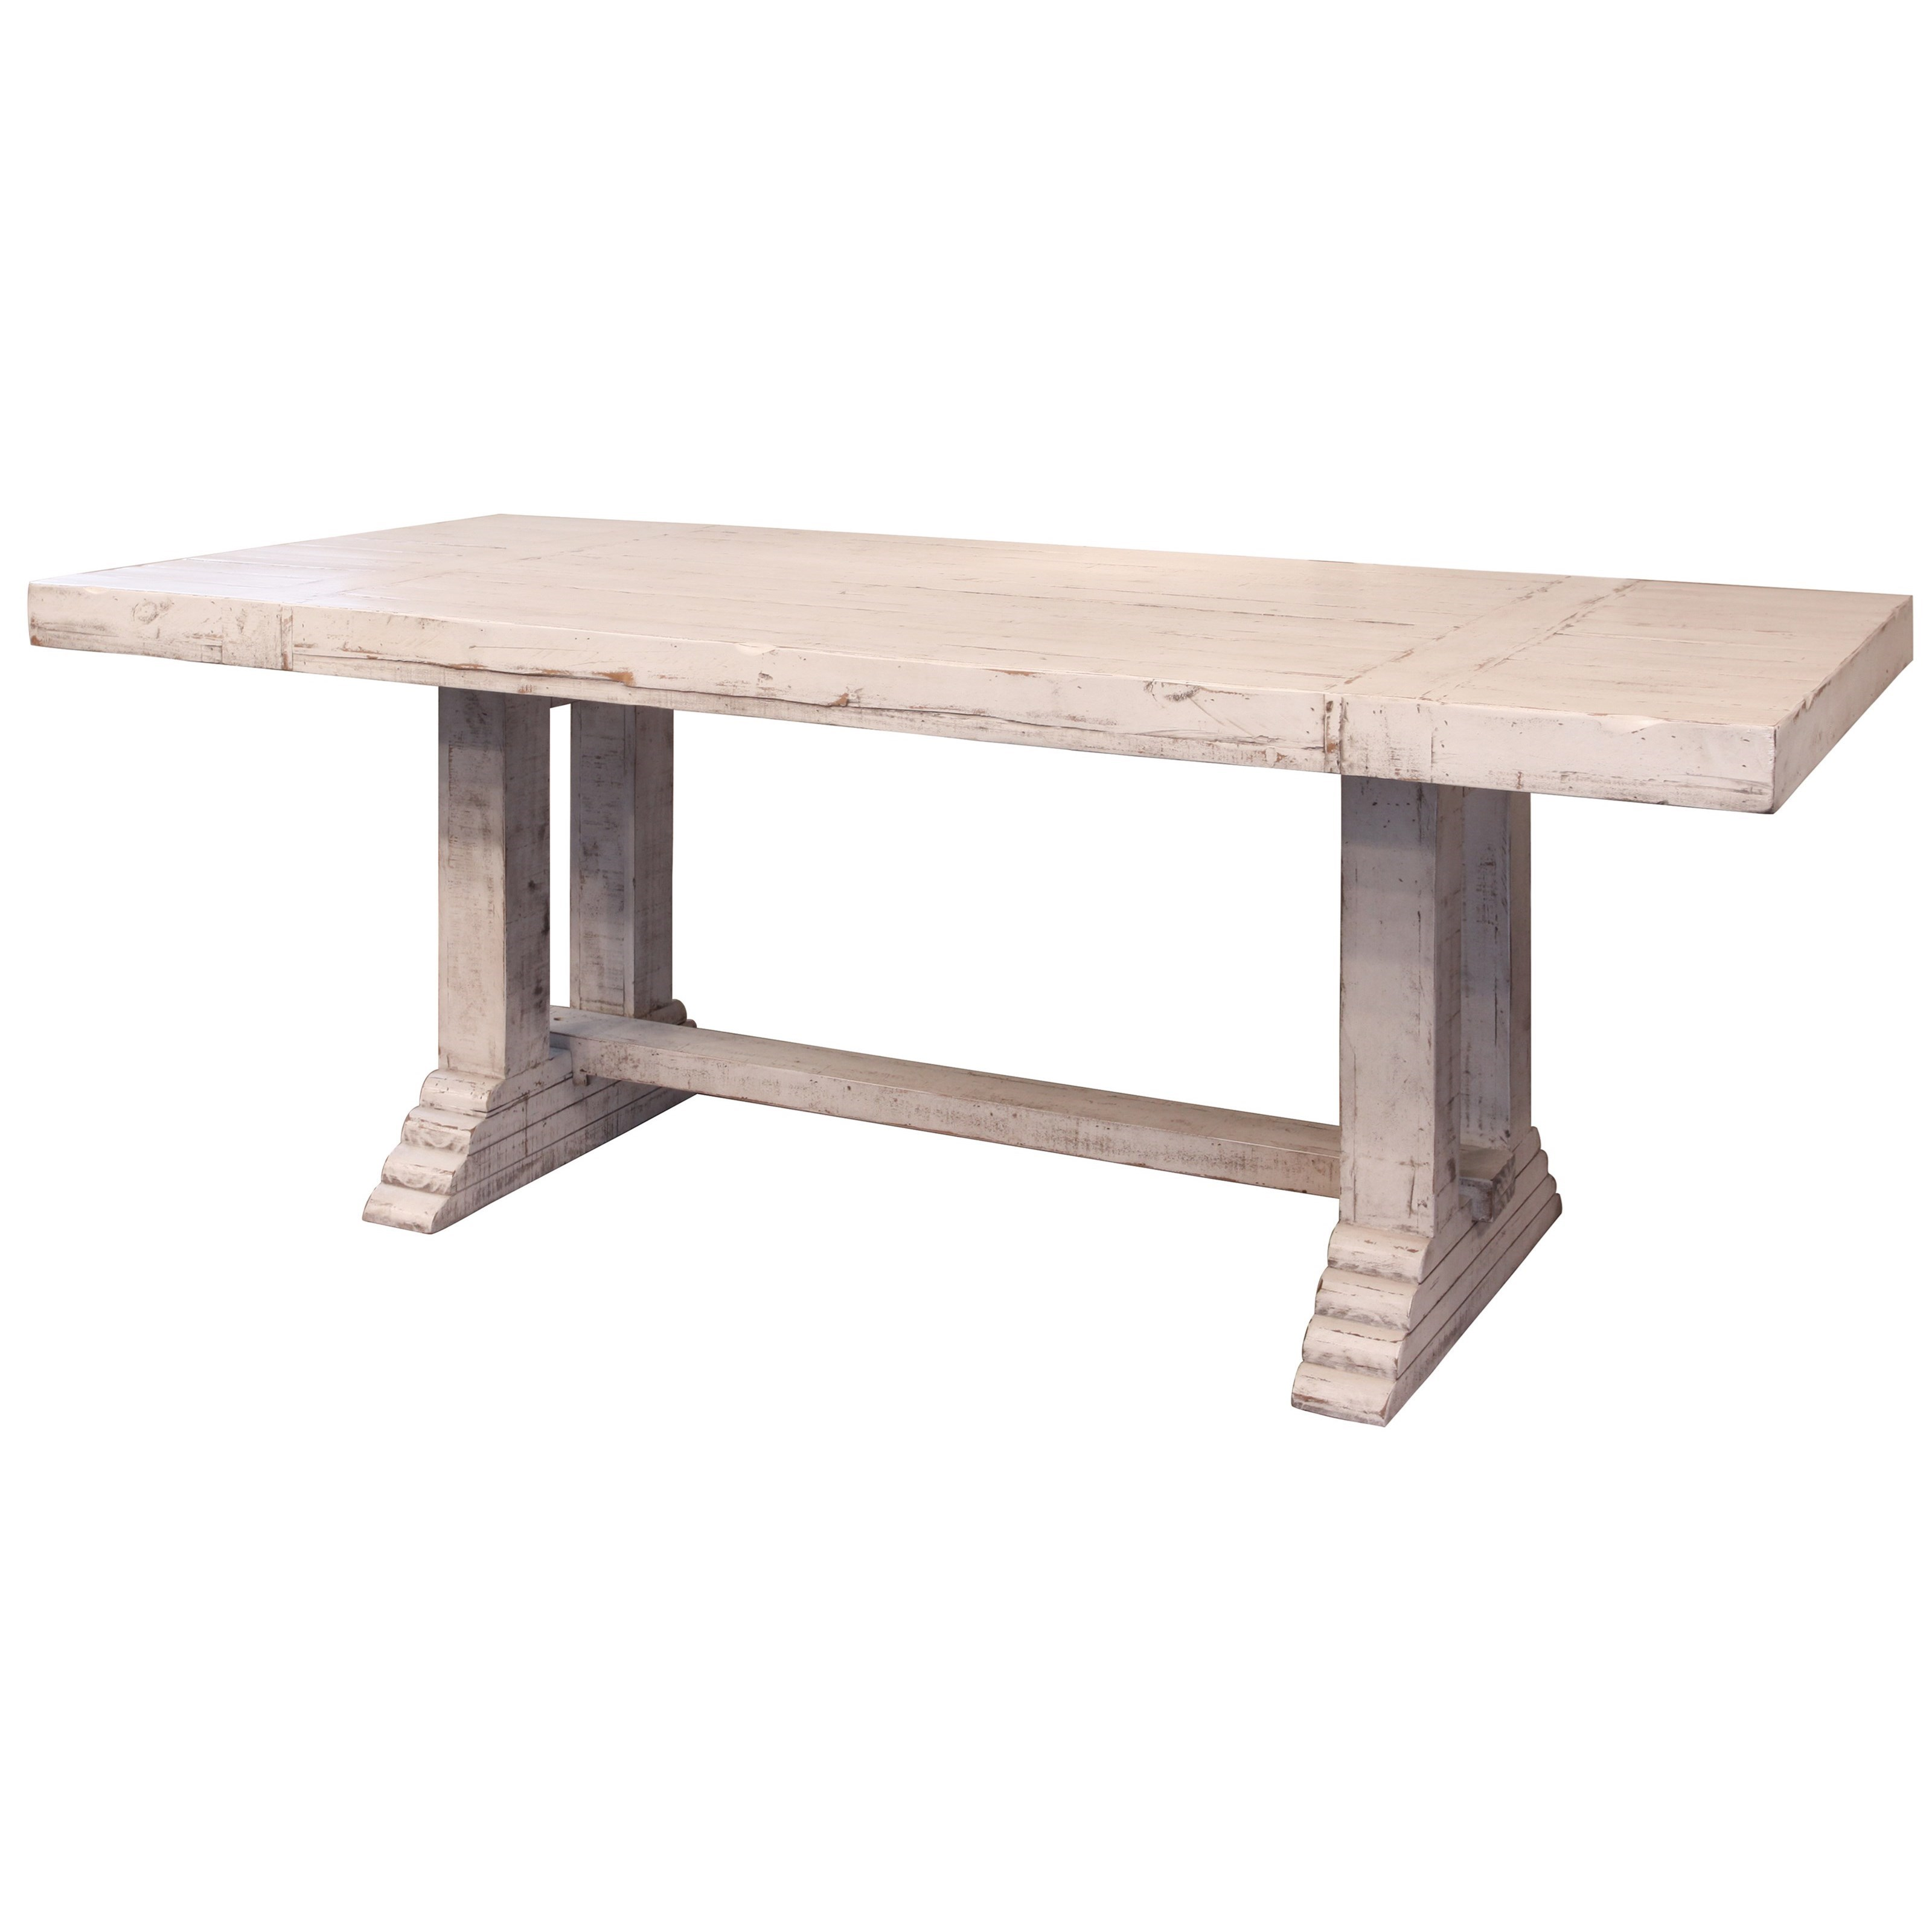 Rustic Dining Table with Double Pedestal Base